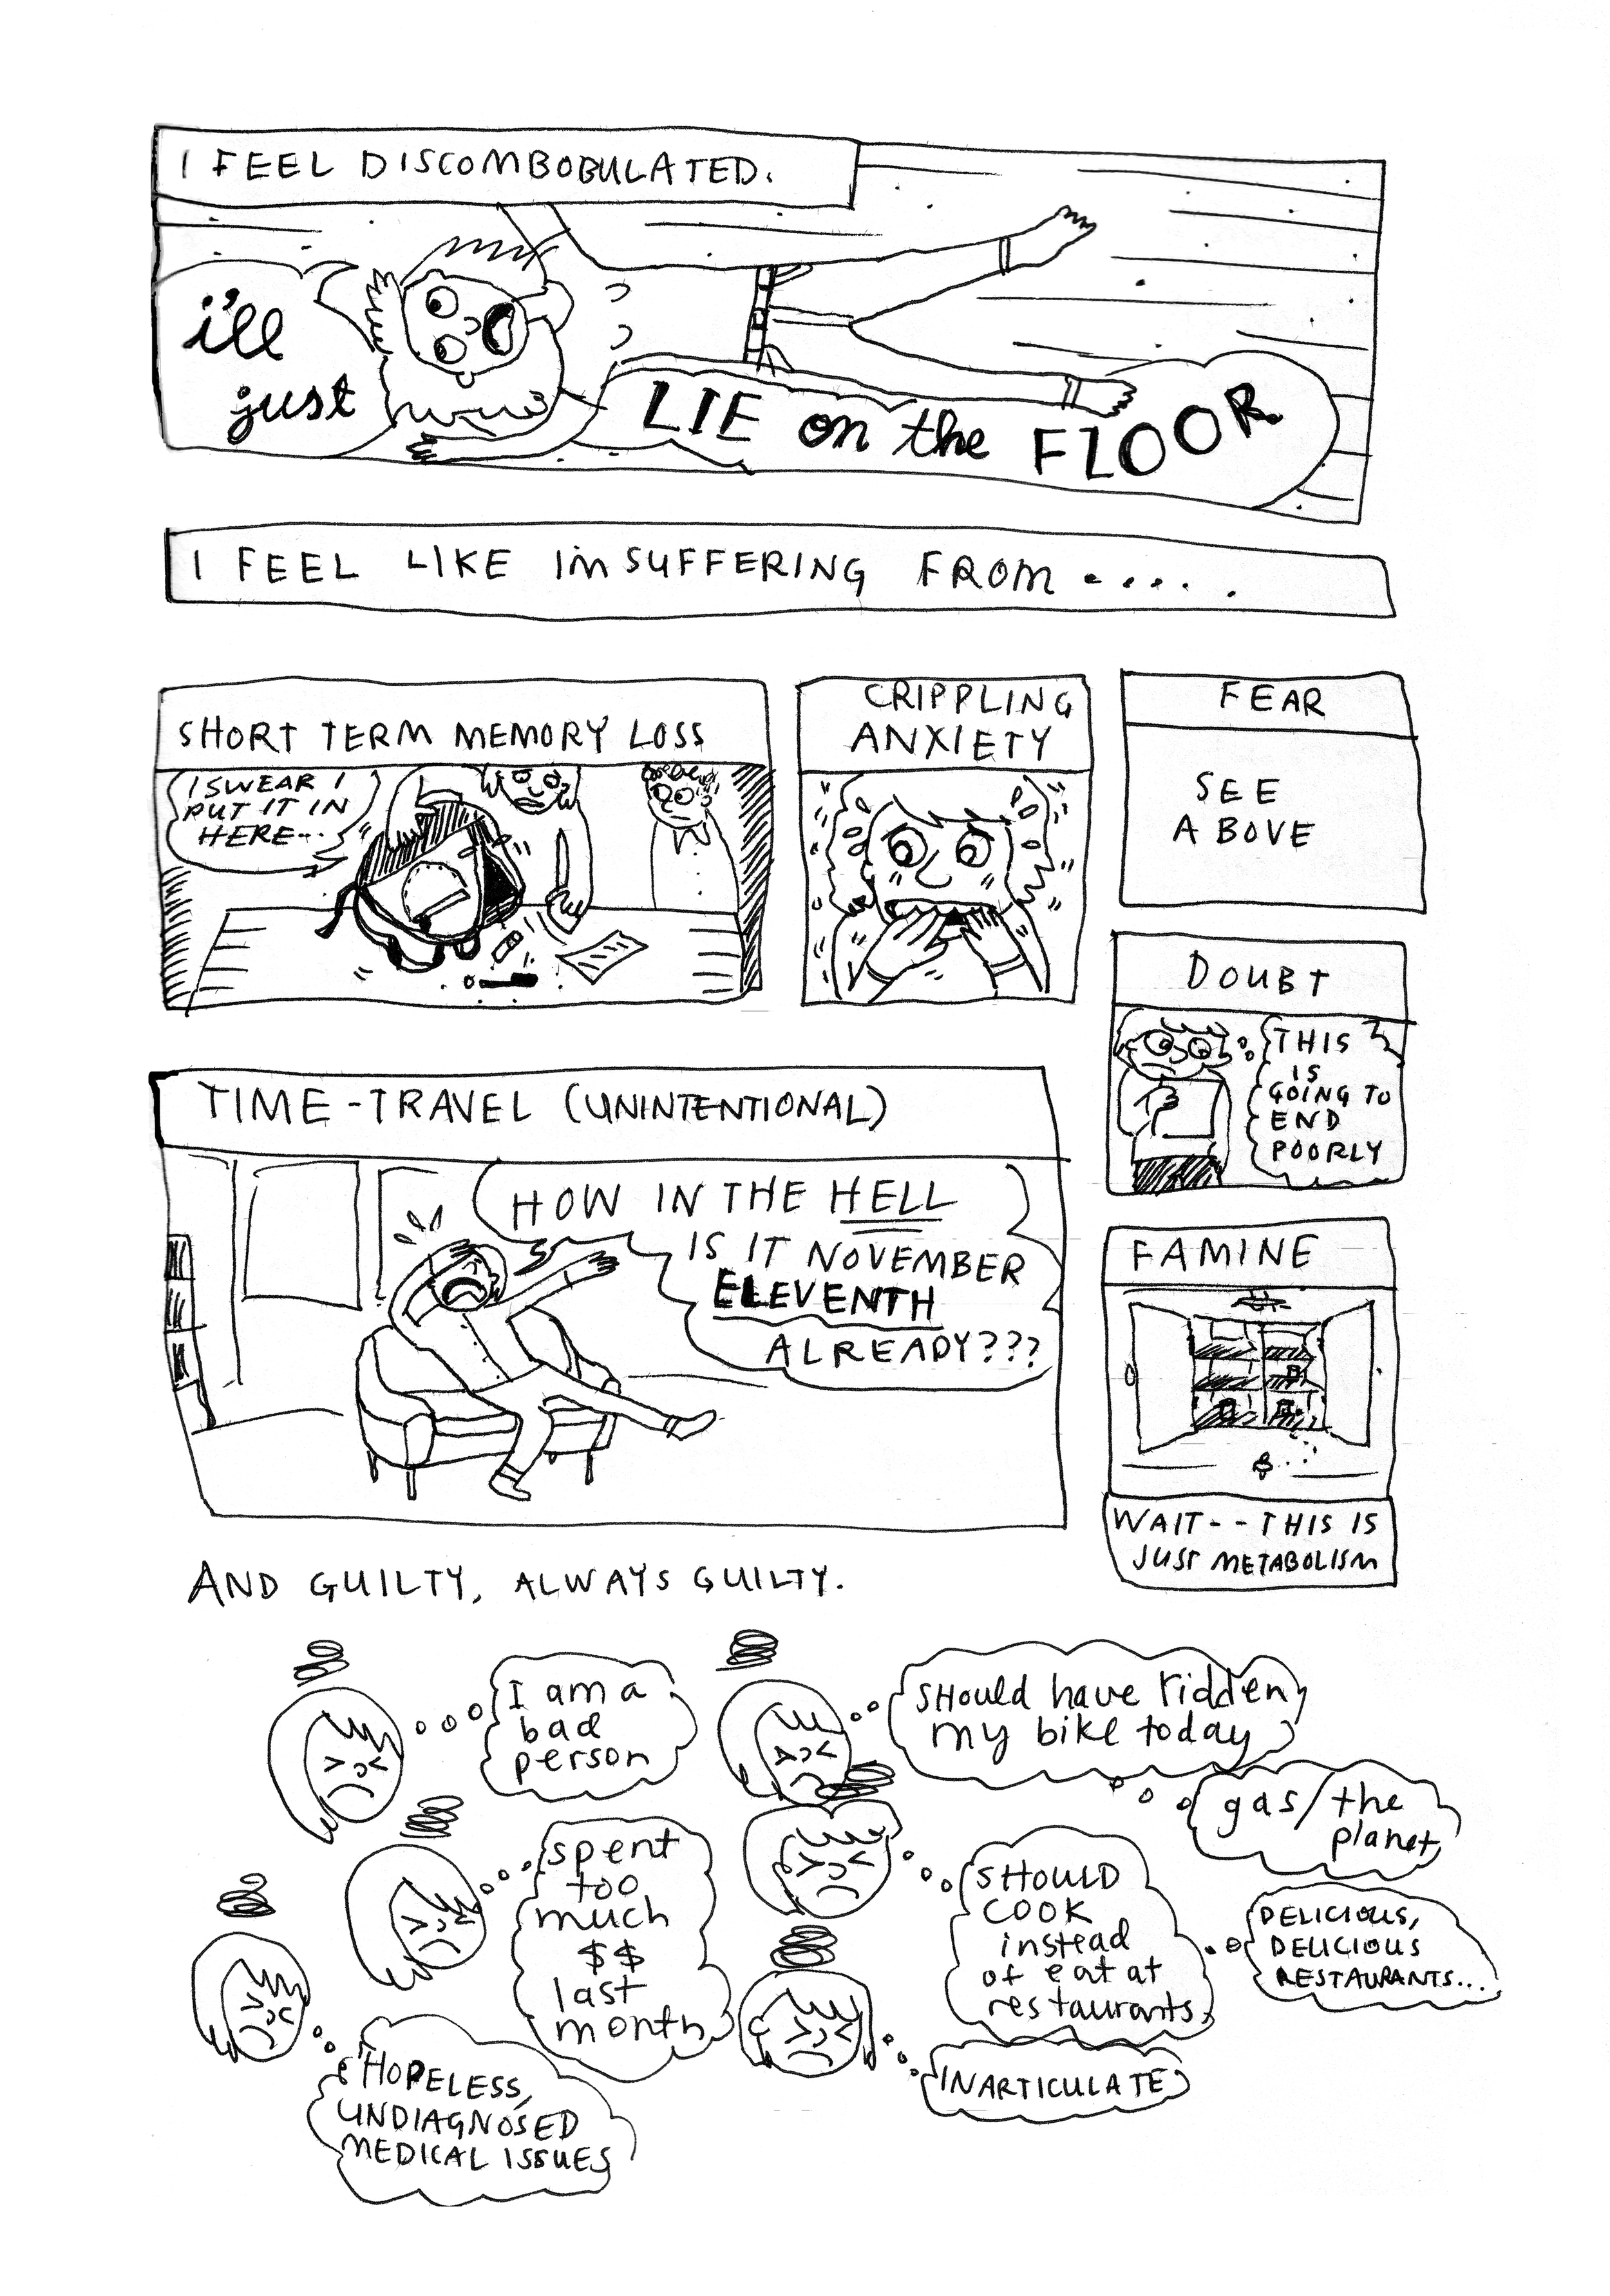 Today Is Wierd  (sic), page 2 of 2, 2014